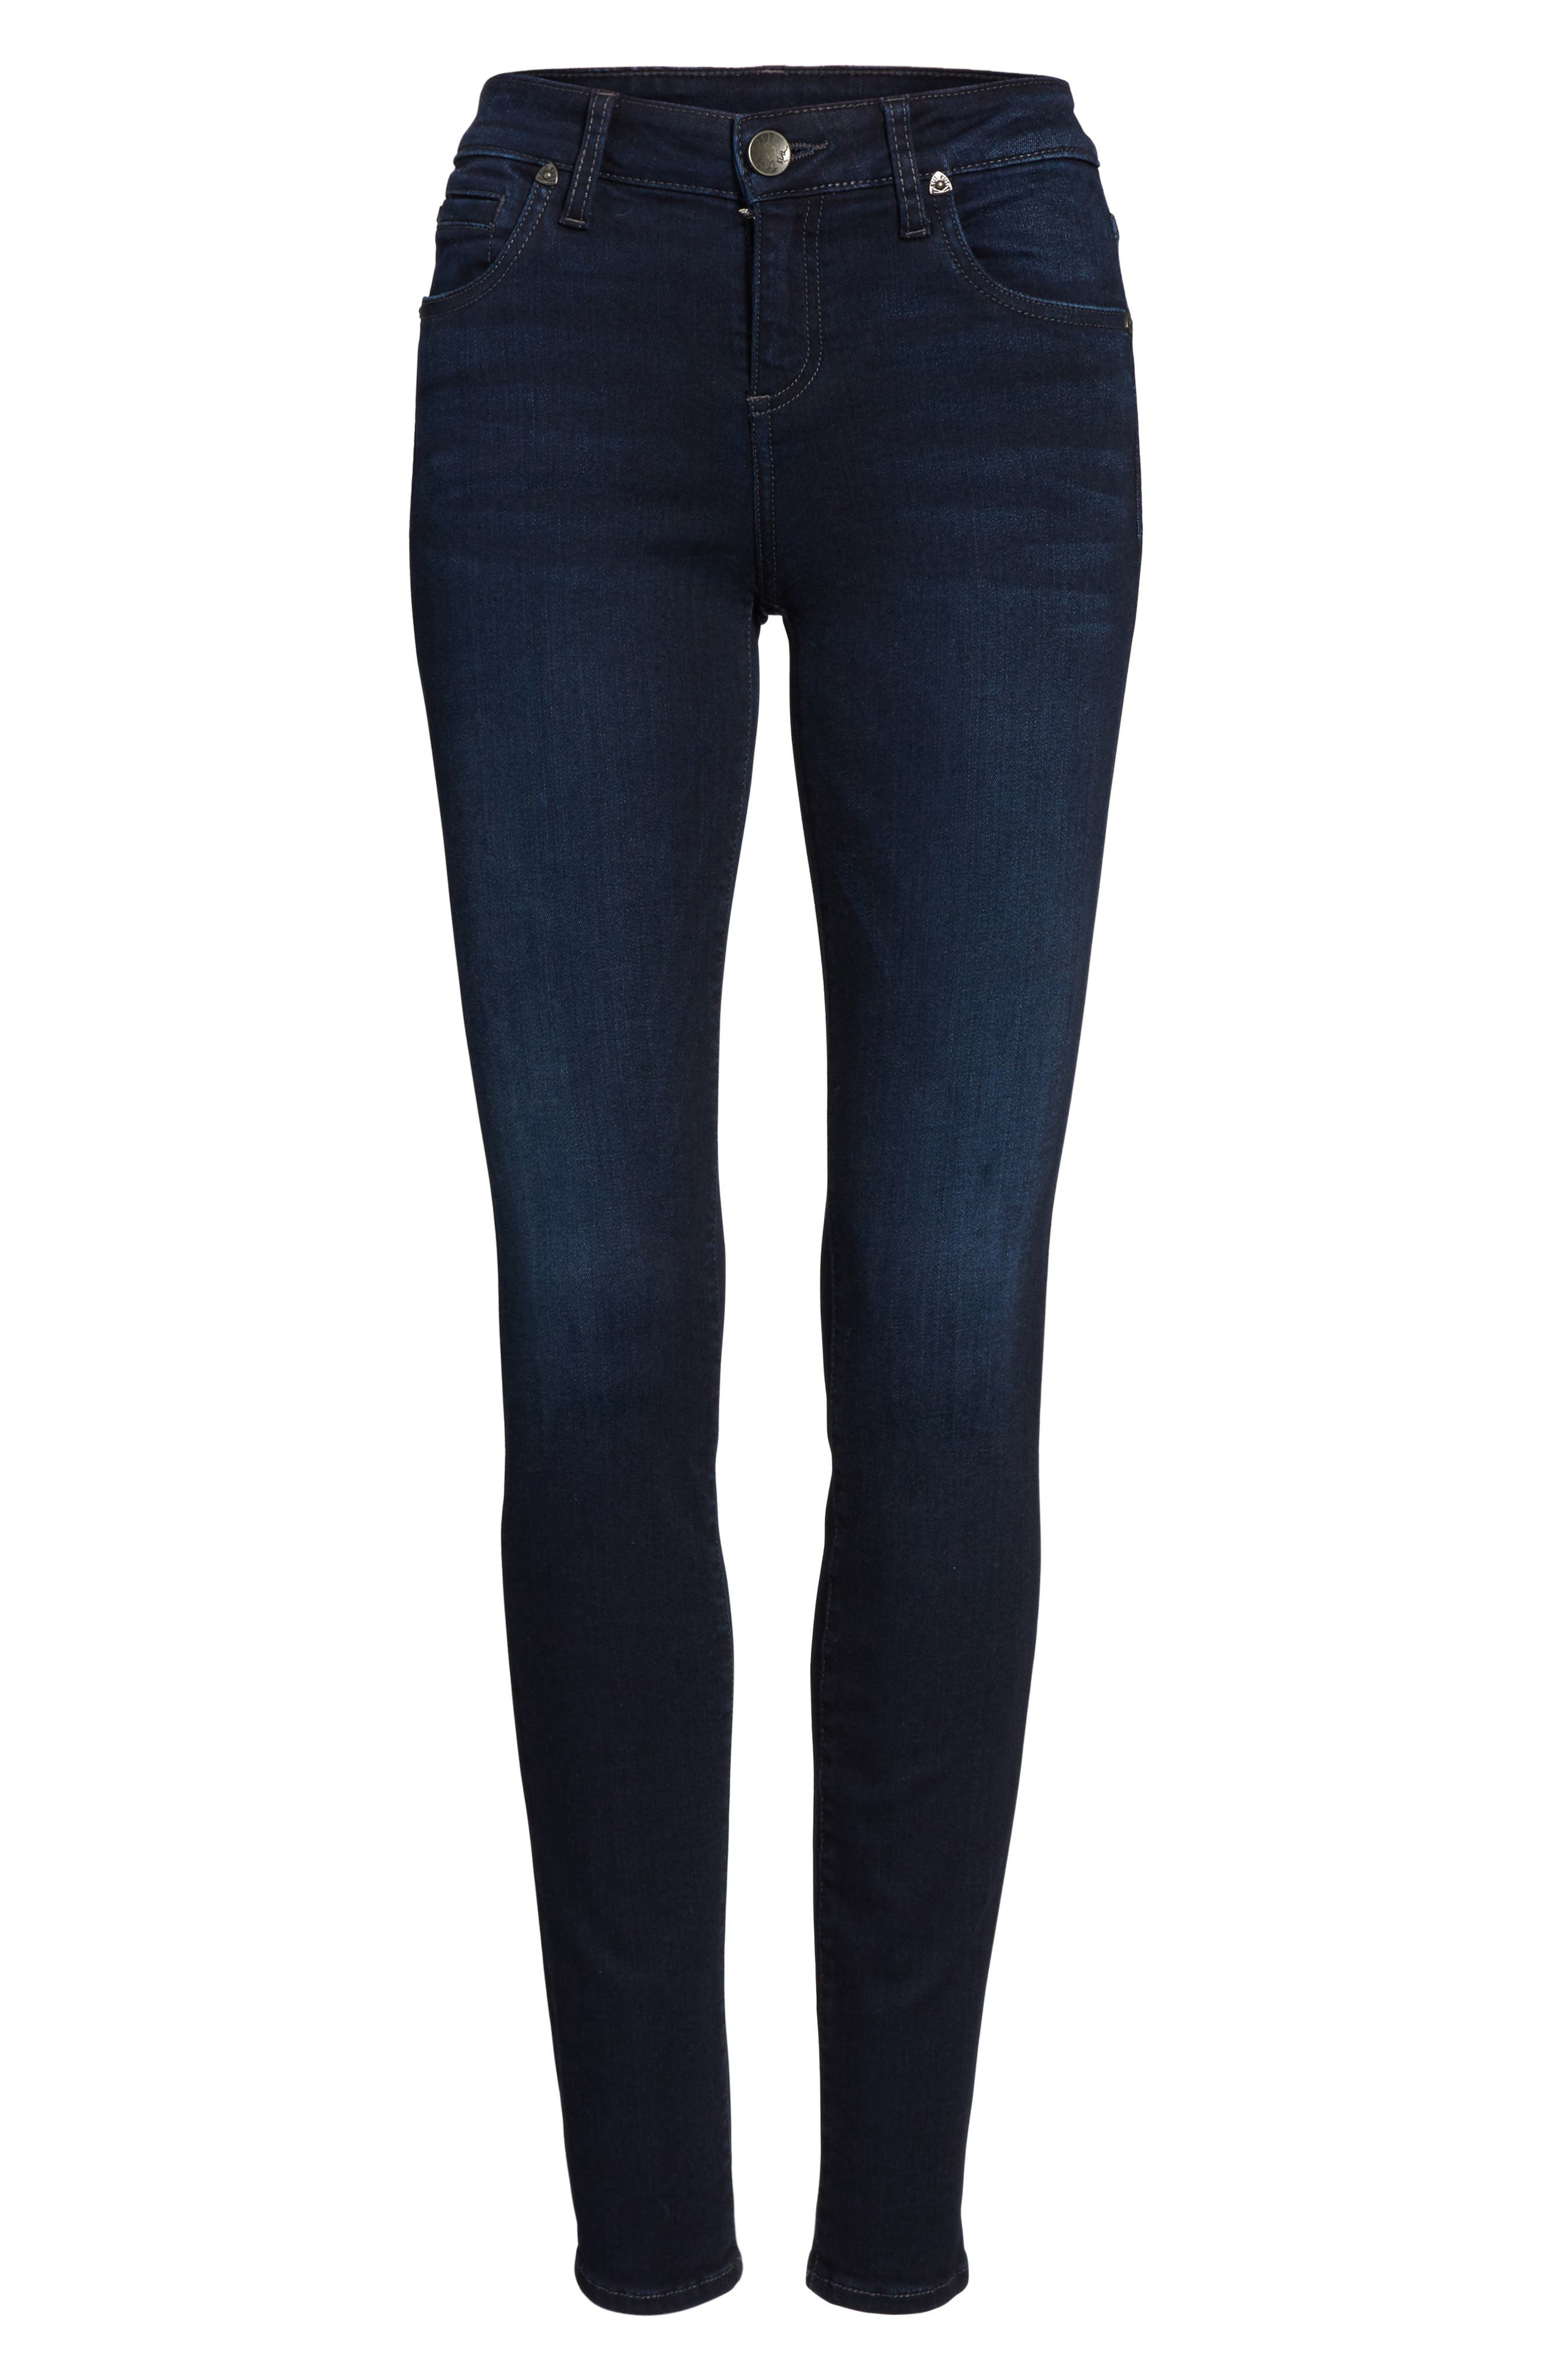 KUT FROM THE KLOTH, Diana Stretch Skinny Jeans, Alternate thumbnail 6, color, 490